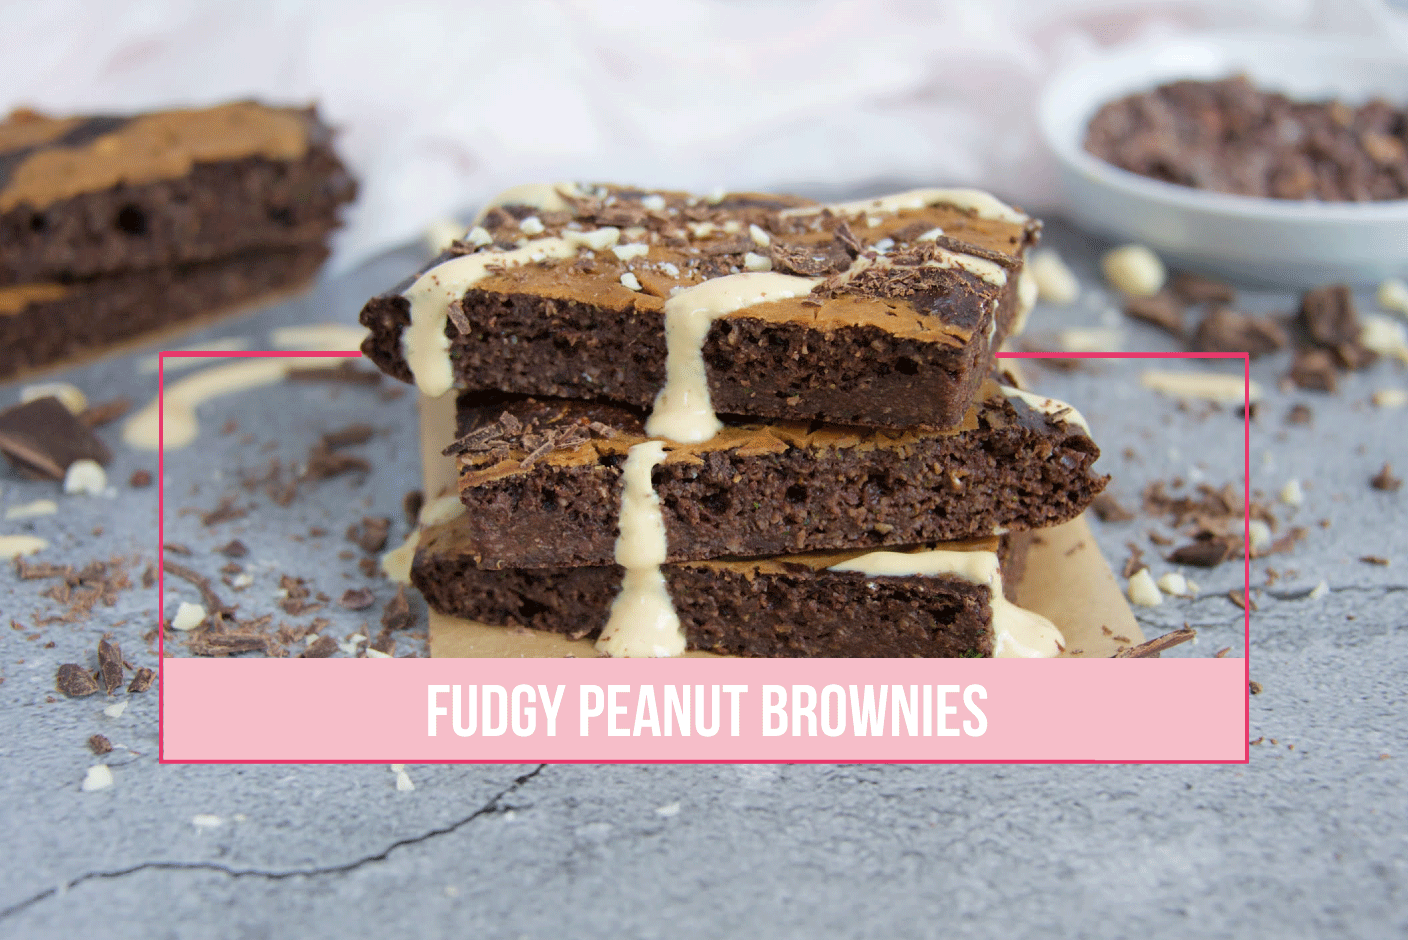 Fudgy Peanut Brownies